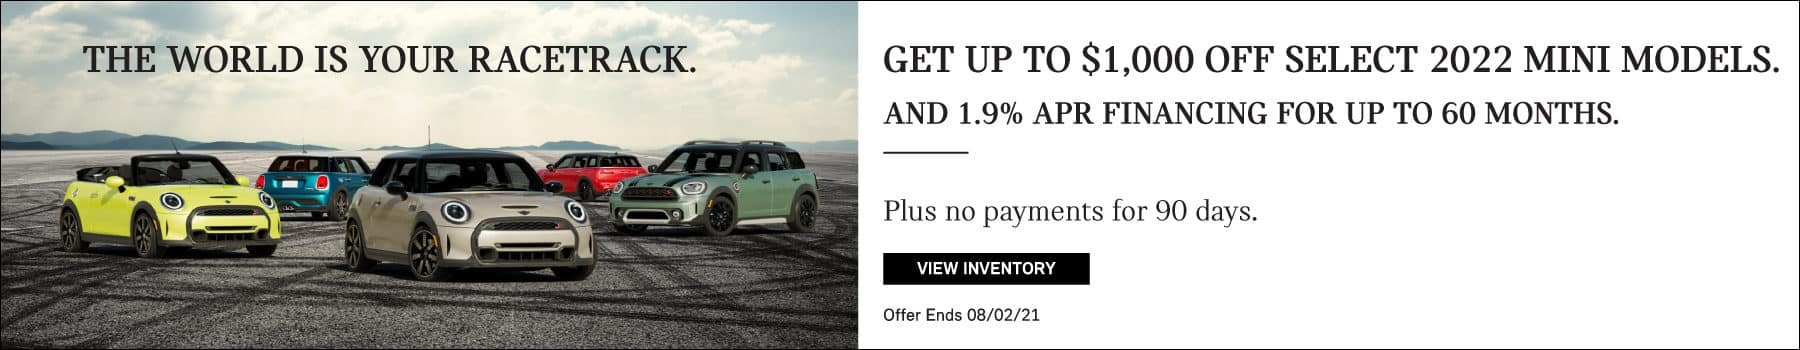 Get up to $1,000 off select 2022 MINI models. And 1.9% APR Financing for up to 60 months. Plus, make no payments for 90 days. Valid through 08/02/21. Click to view inventory. See dealer for full details. Image shows a family of 2022 MINI vehicles parked on a racetrack with tire marks. The world is your racetrack.